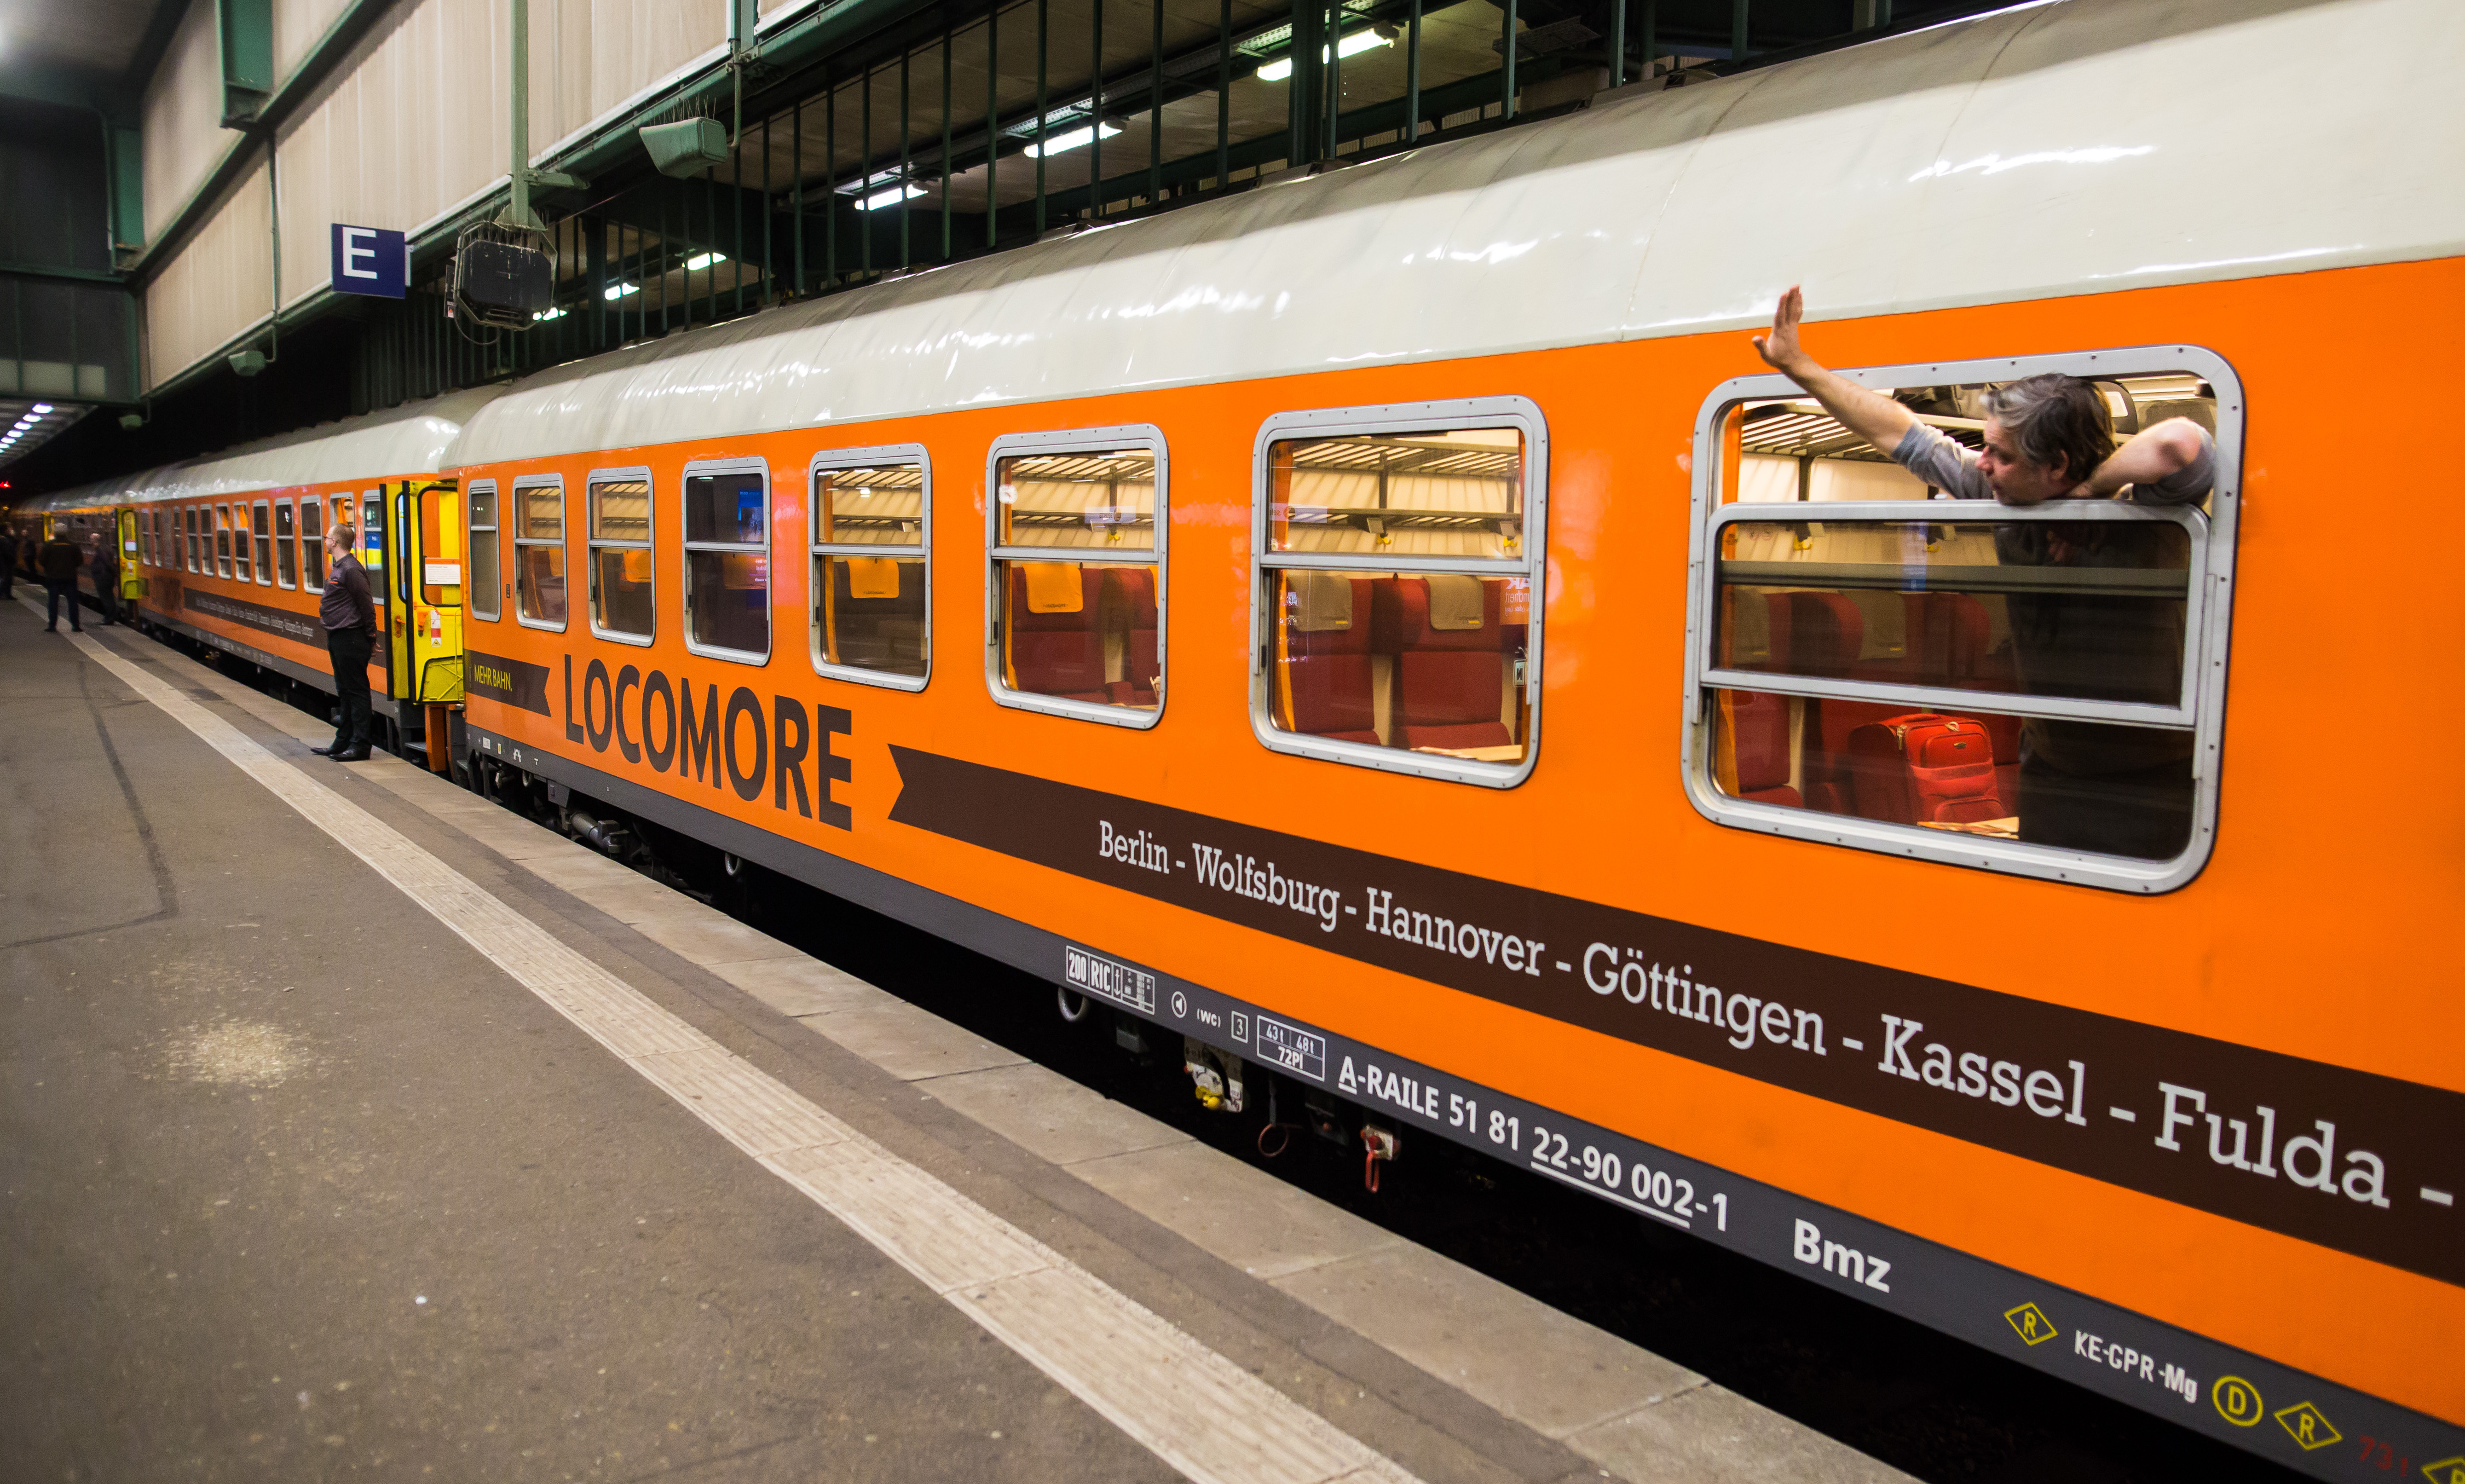 A passenger waves from a window of a train of the crowdfunded company 'Locomore', at the station in Stuttgart, Germany, 14 December 2016. German company 'Locomore' on 13 December 2016 had its trains running for the first time on the route between Stuttgart and the German capital Berlin.